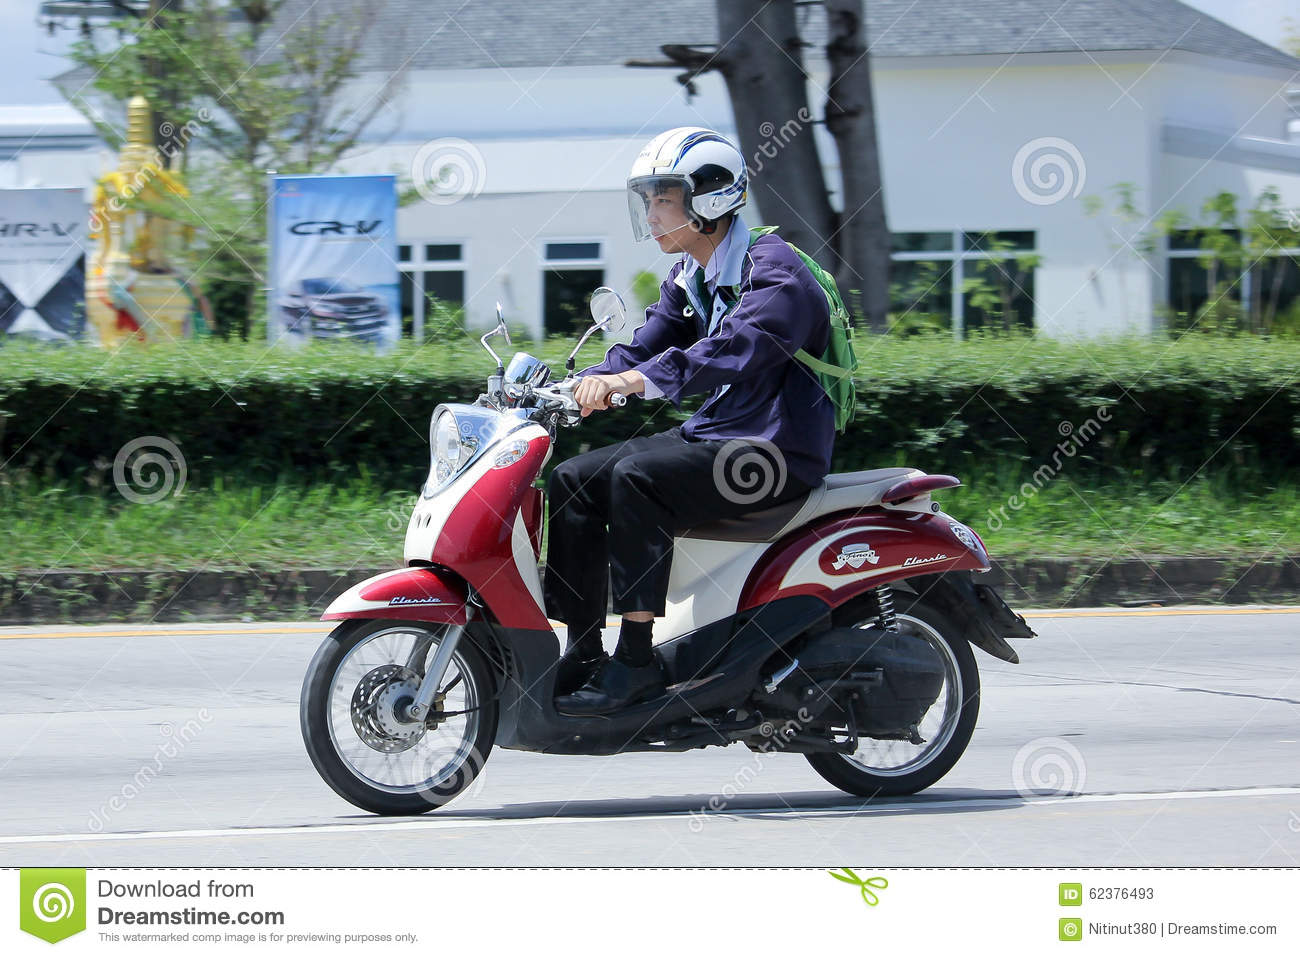 Private yamaha motorcycle fino editorial stock photo for Yamaha motorcycles thailand prices